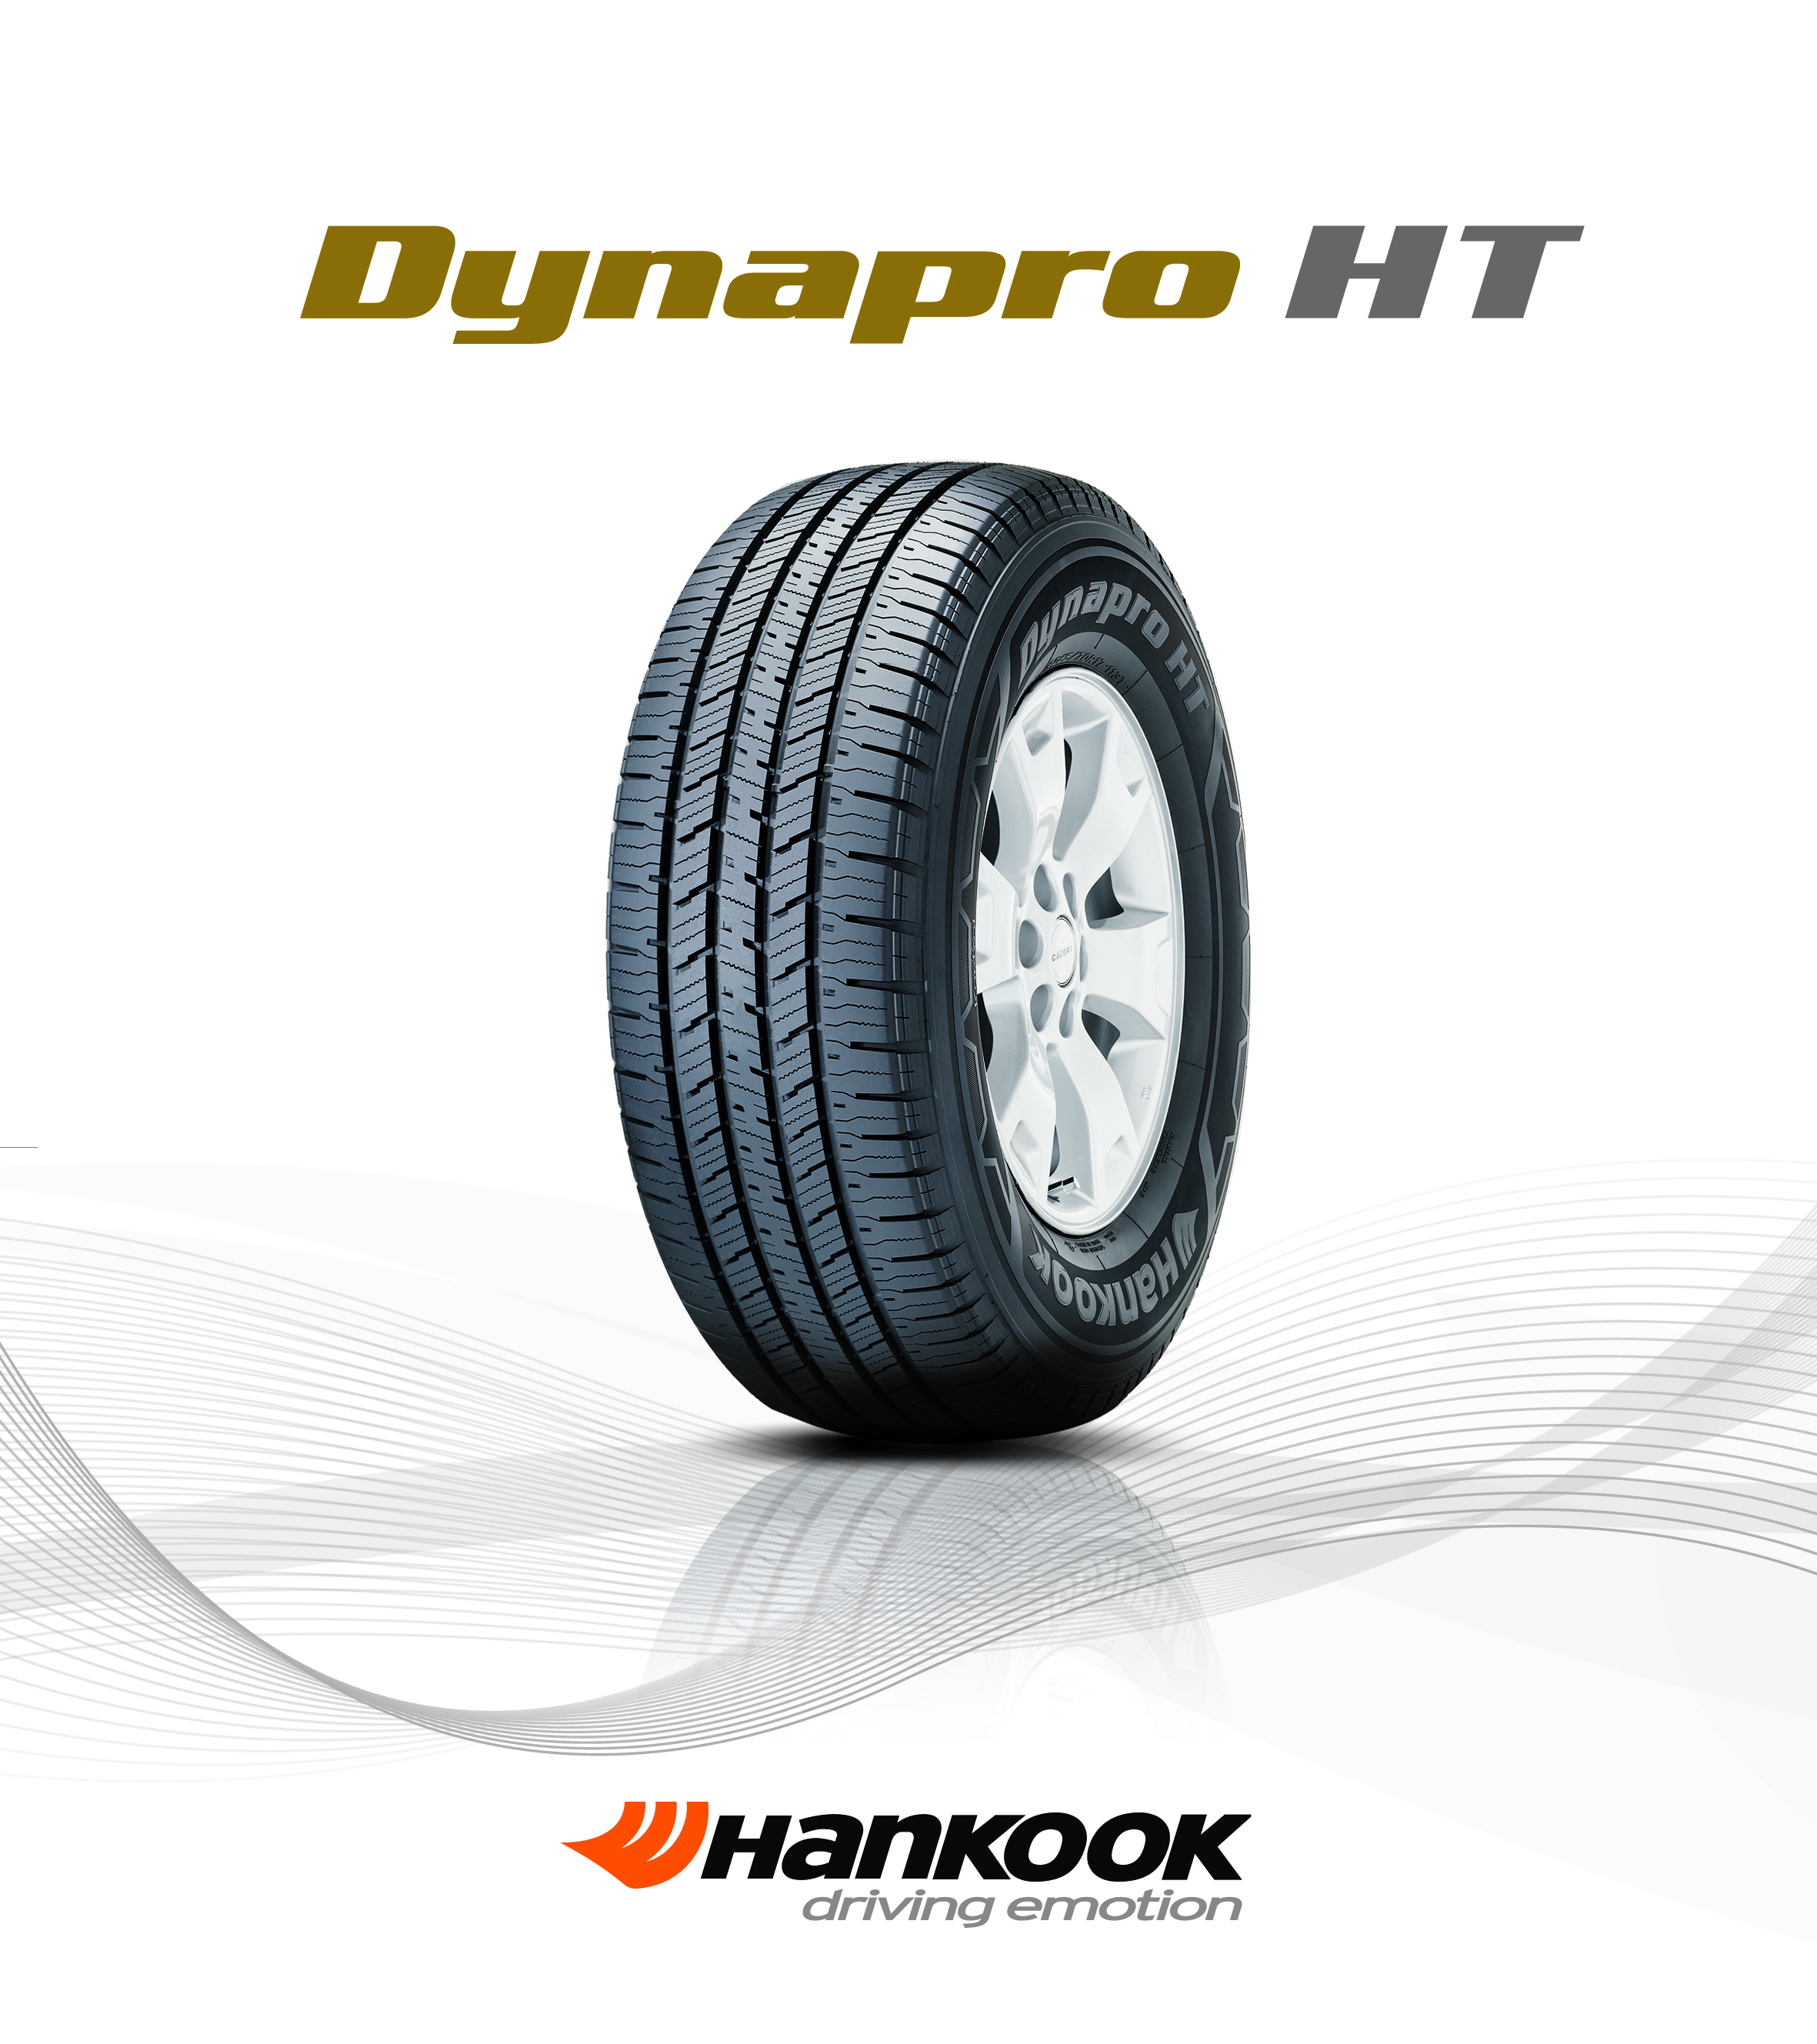 Hankook to supply tires for 2015 Navigator